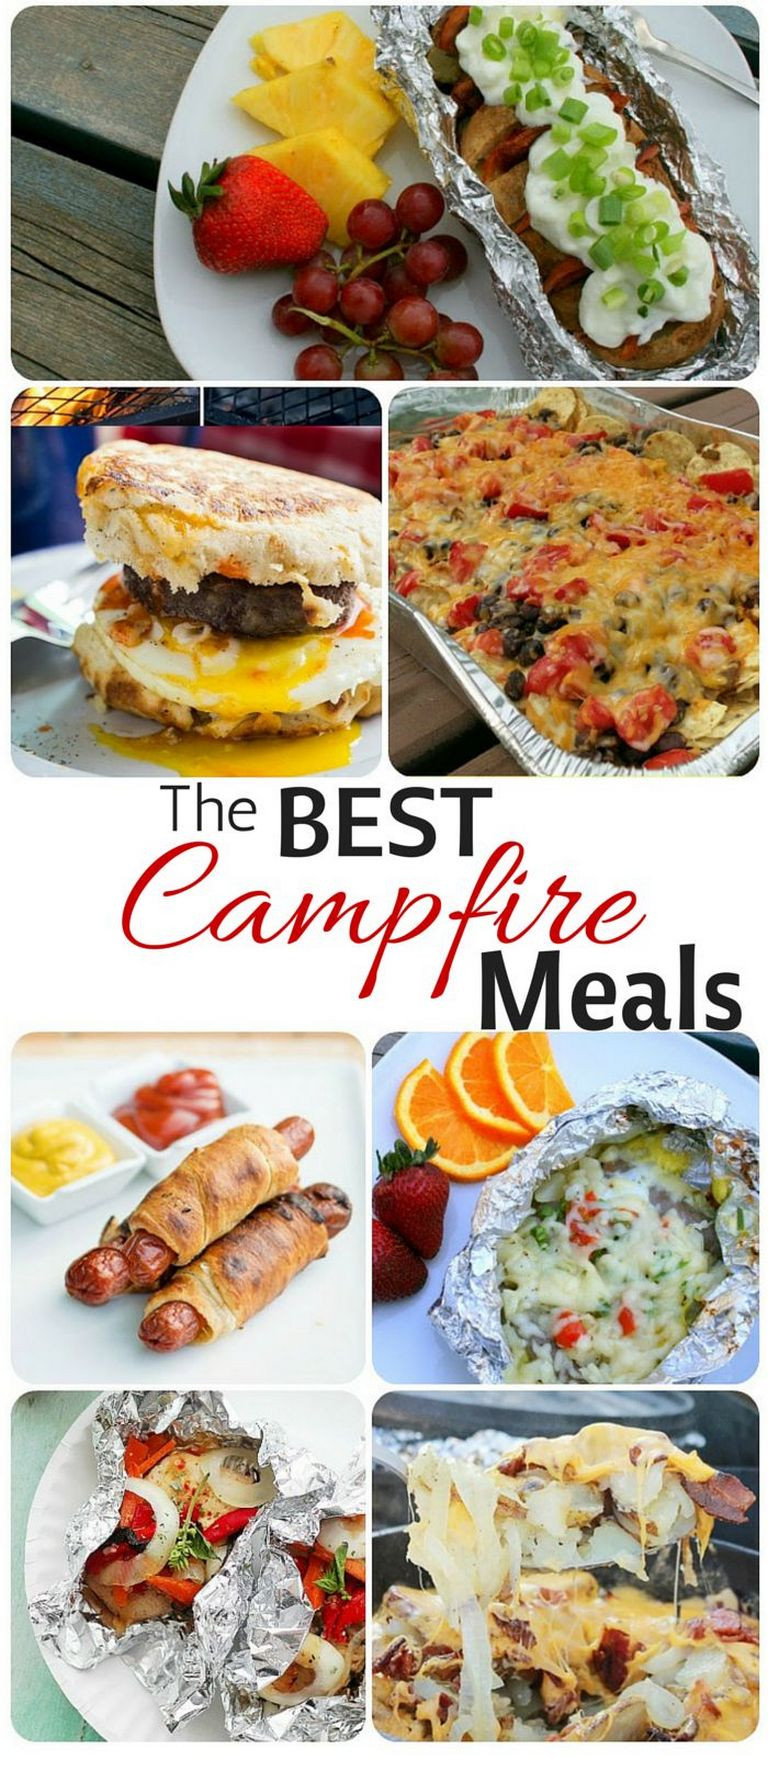 Easy Camping Dinner Ideas  Easy camping meals campfires ideas 34 ⋆ TRENDXYZ